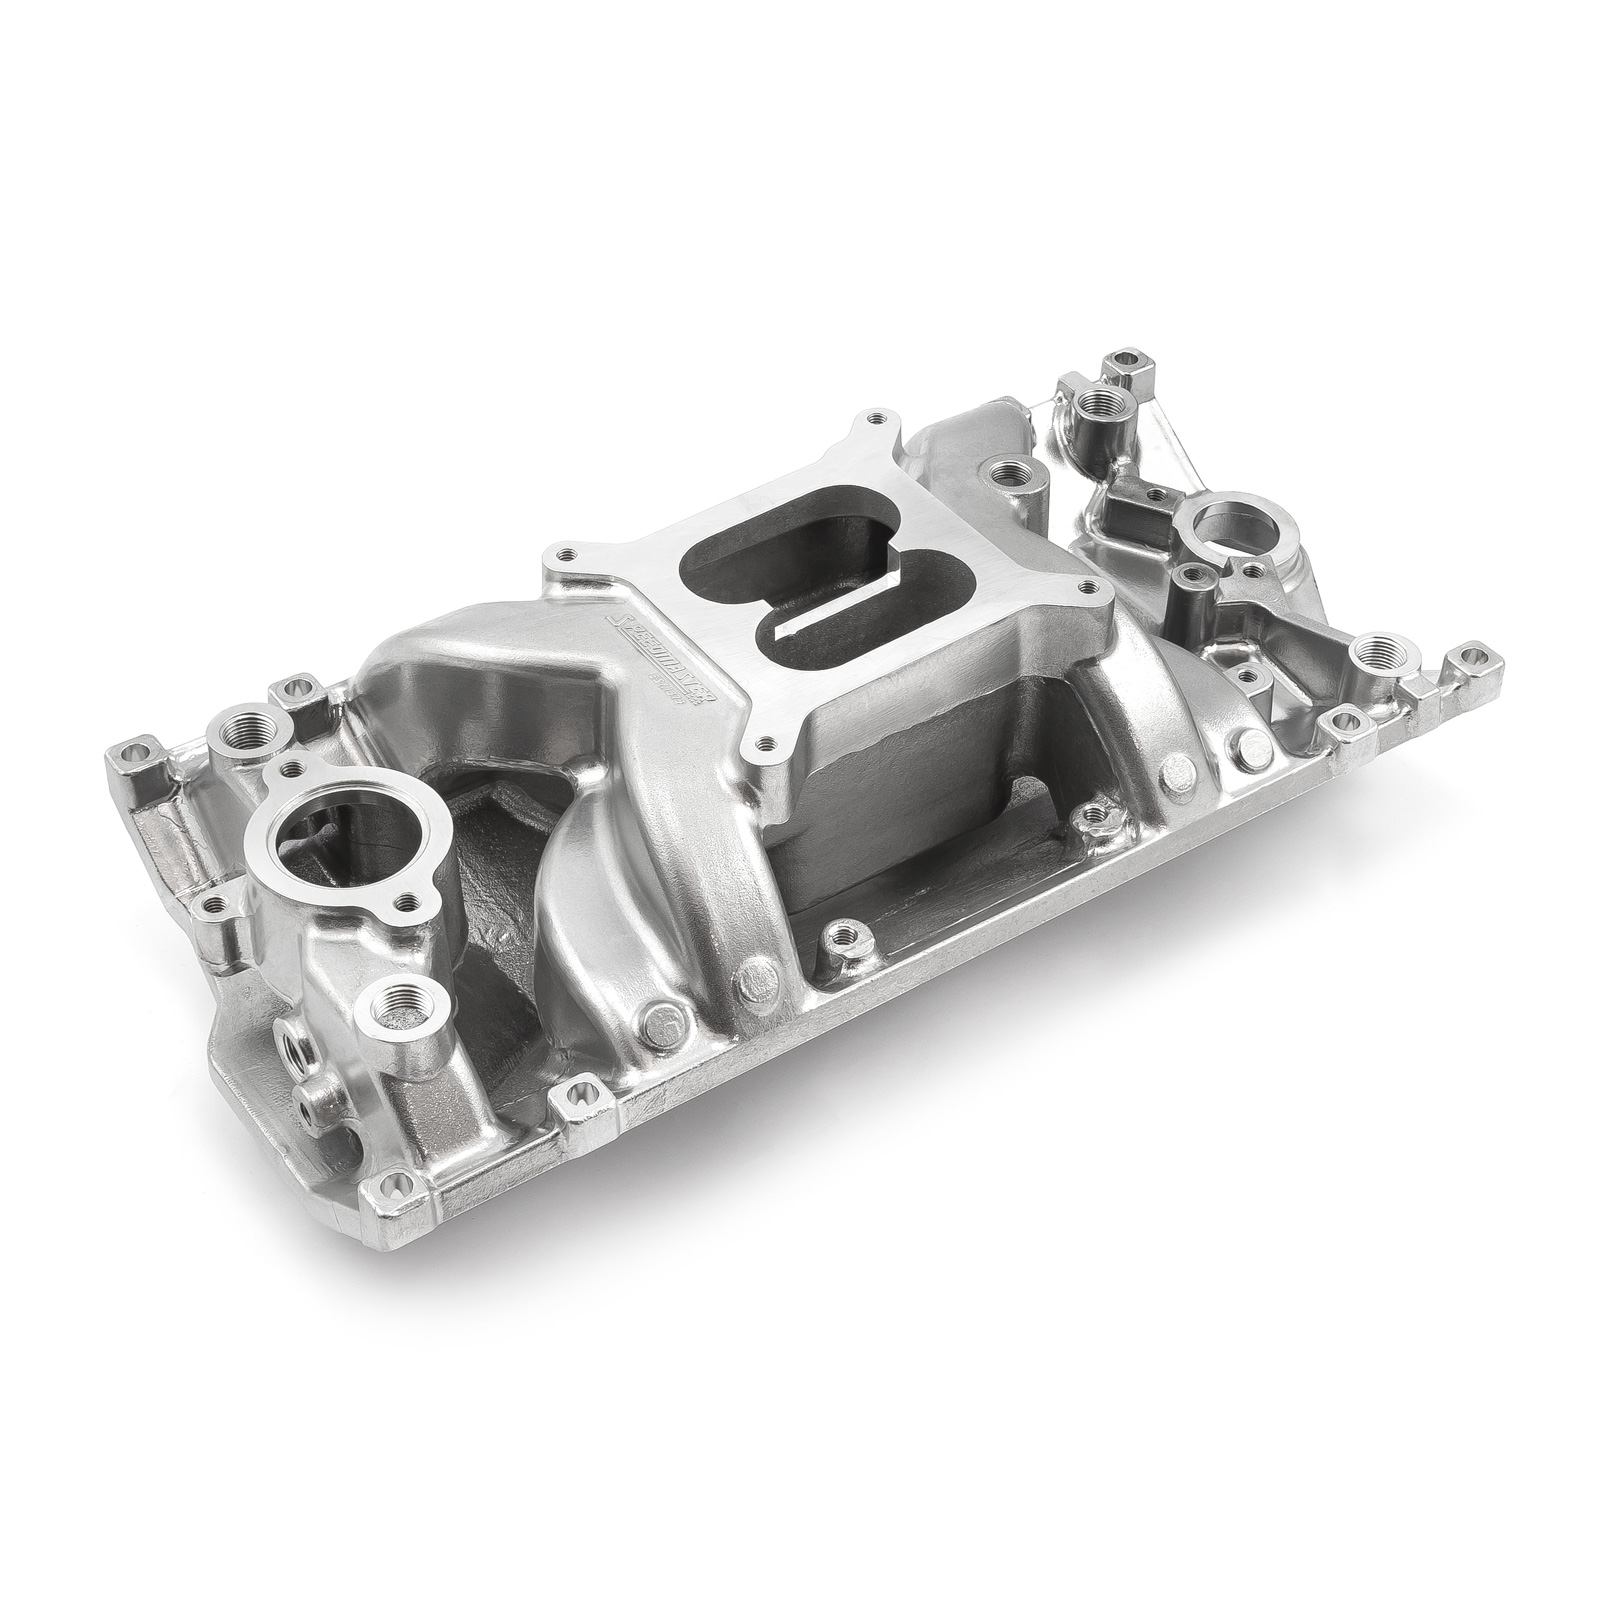 Chevy SBC 350 MidRise Air Vortec Intake Manifold Machine Polished